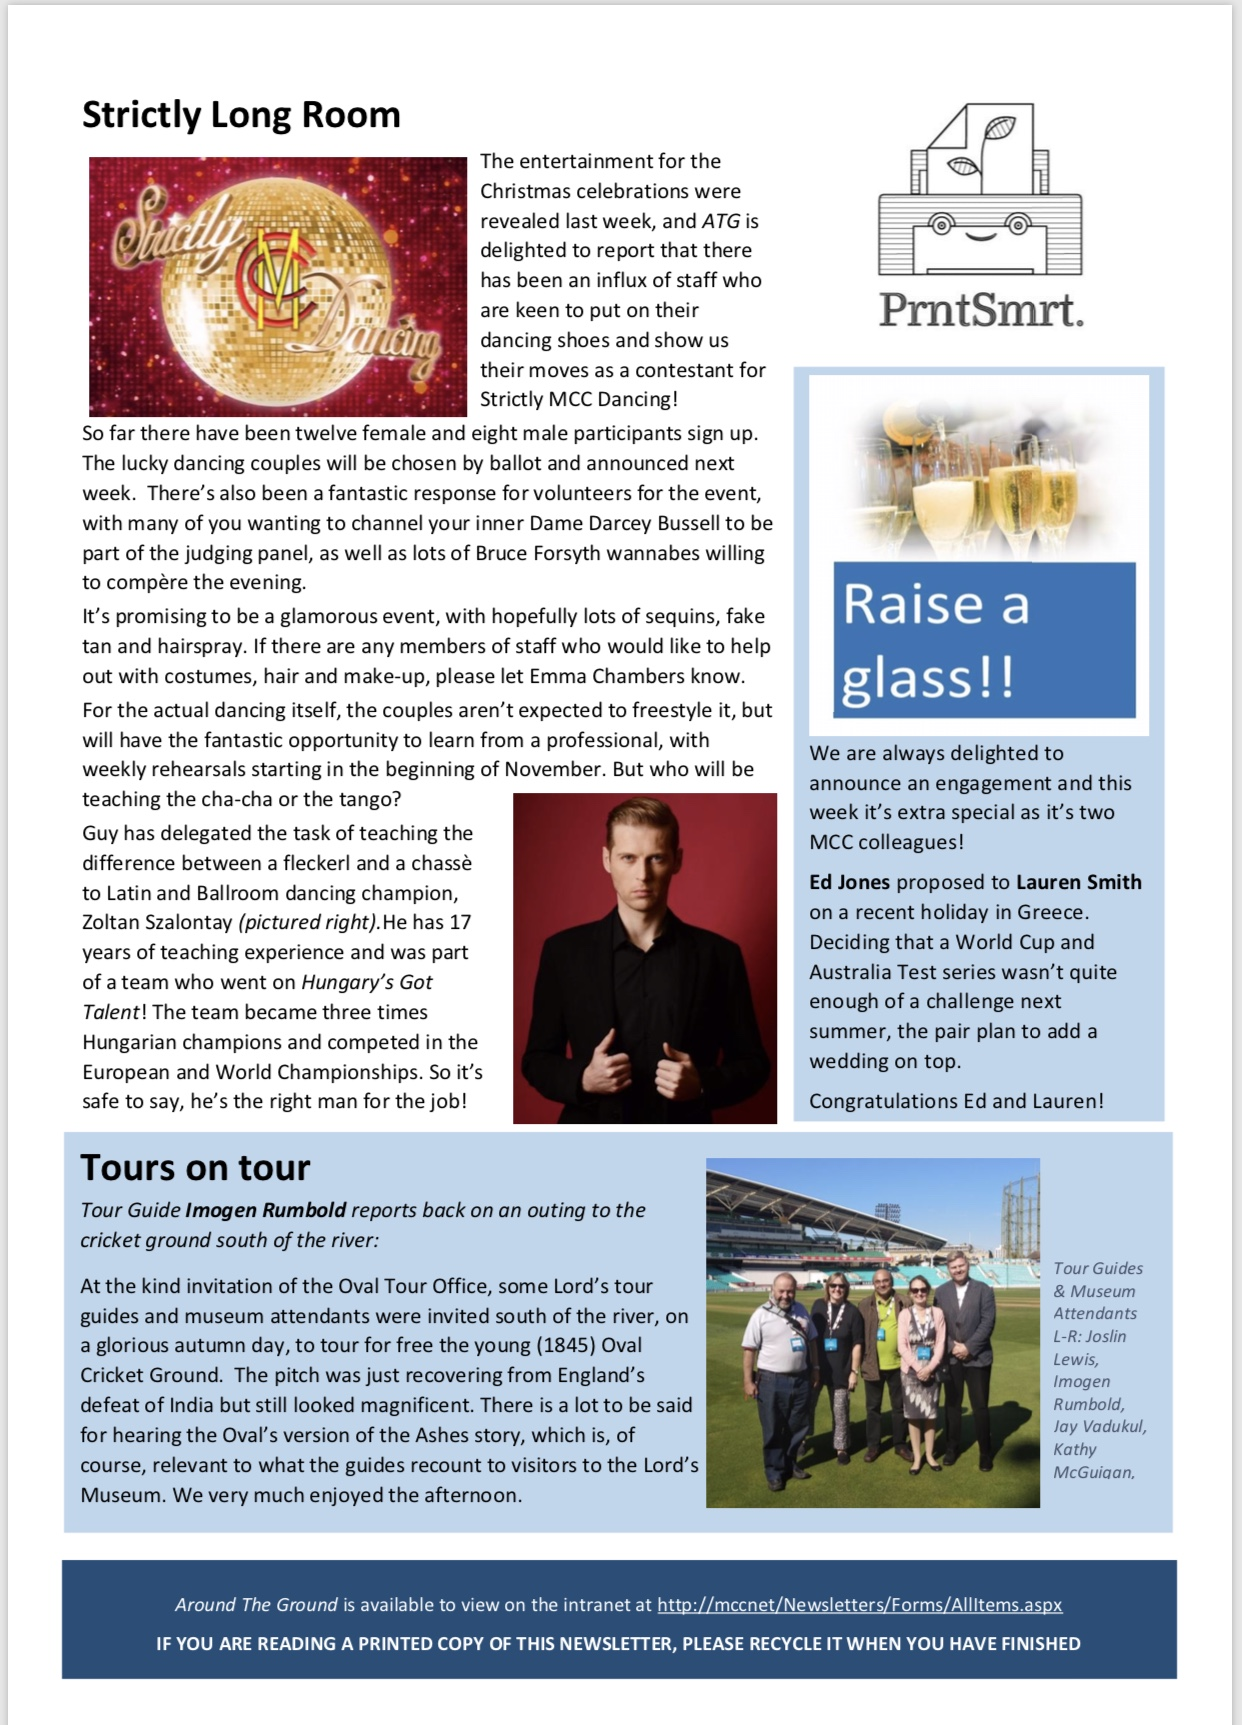 100th issue of ATG! This week at Lord's Cricket Ground